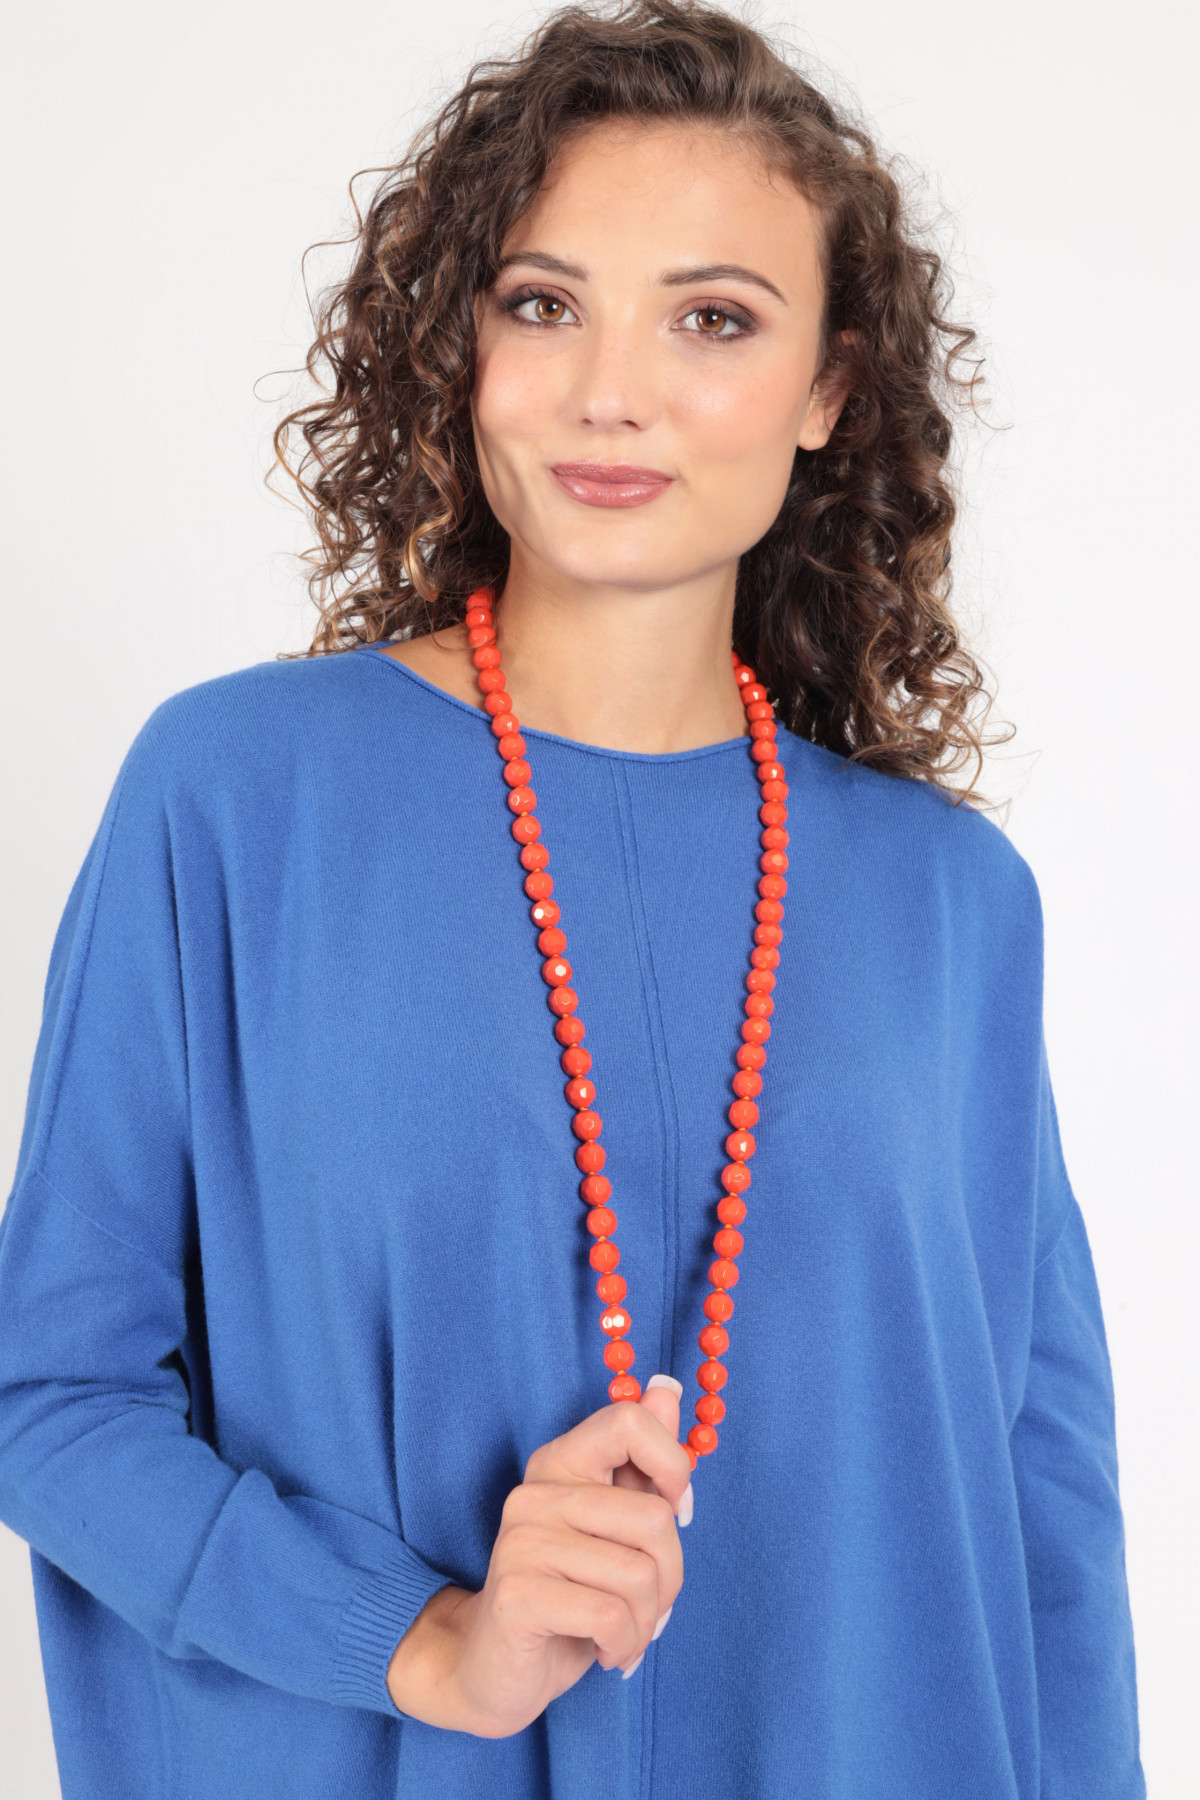 Necklace with Hexagonal Pearls